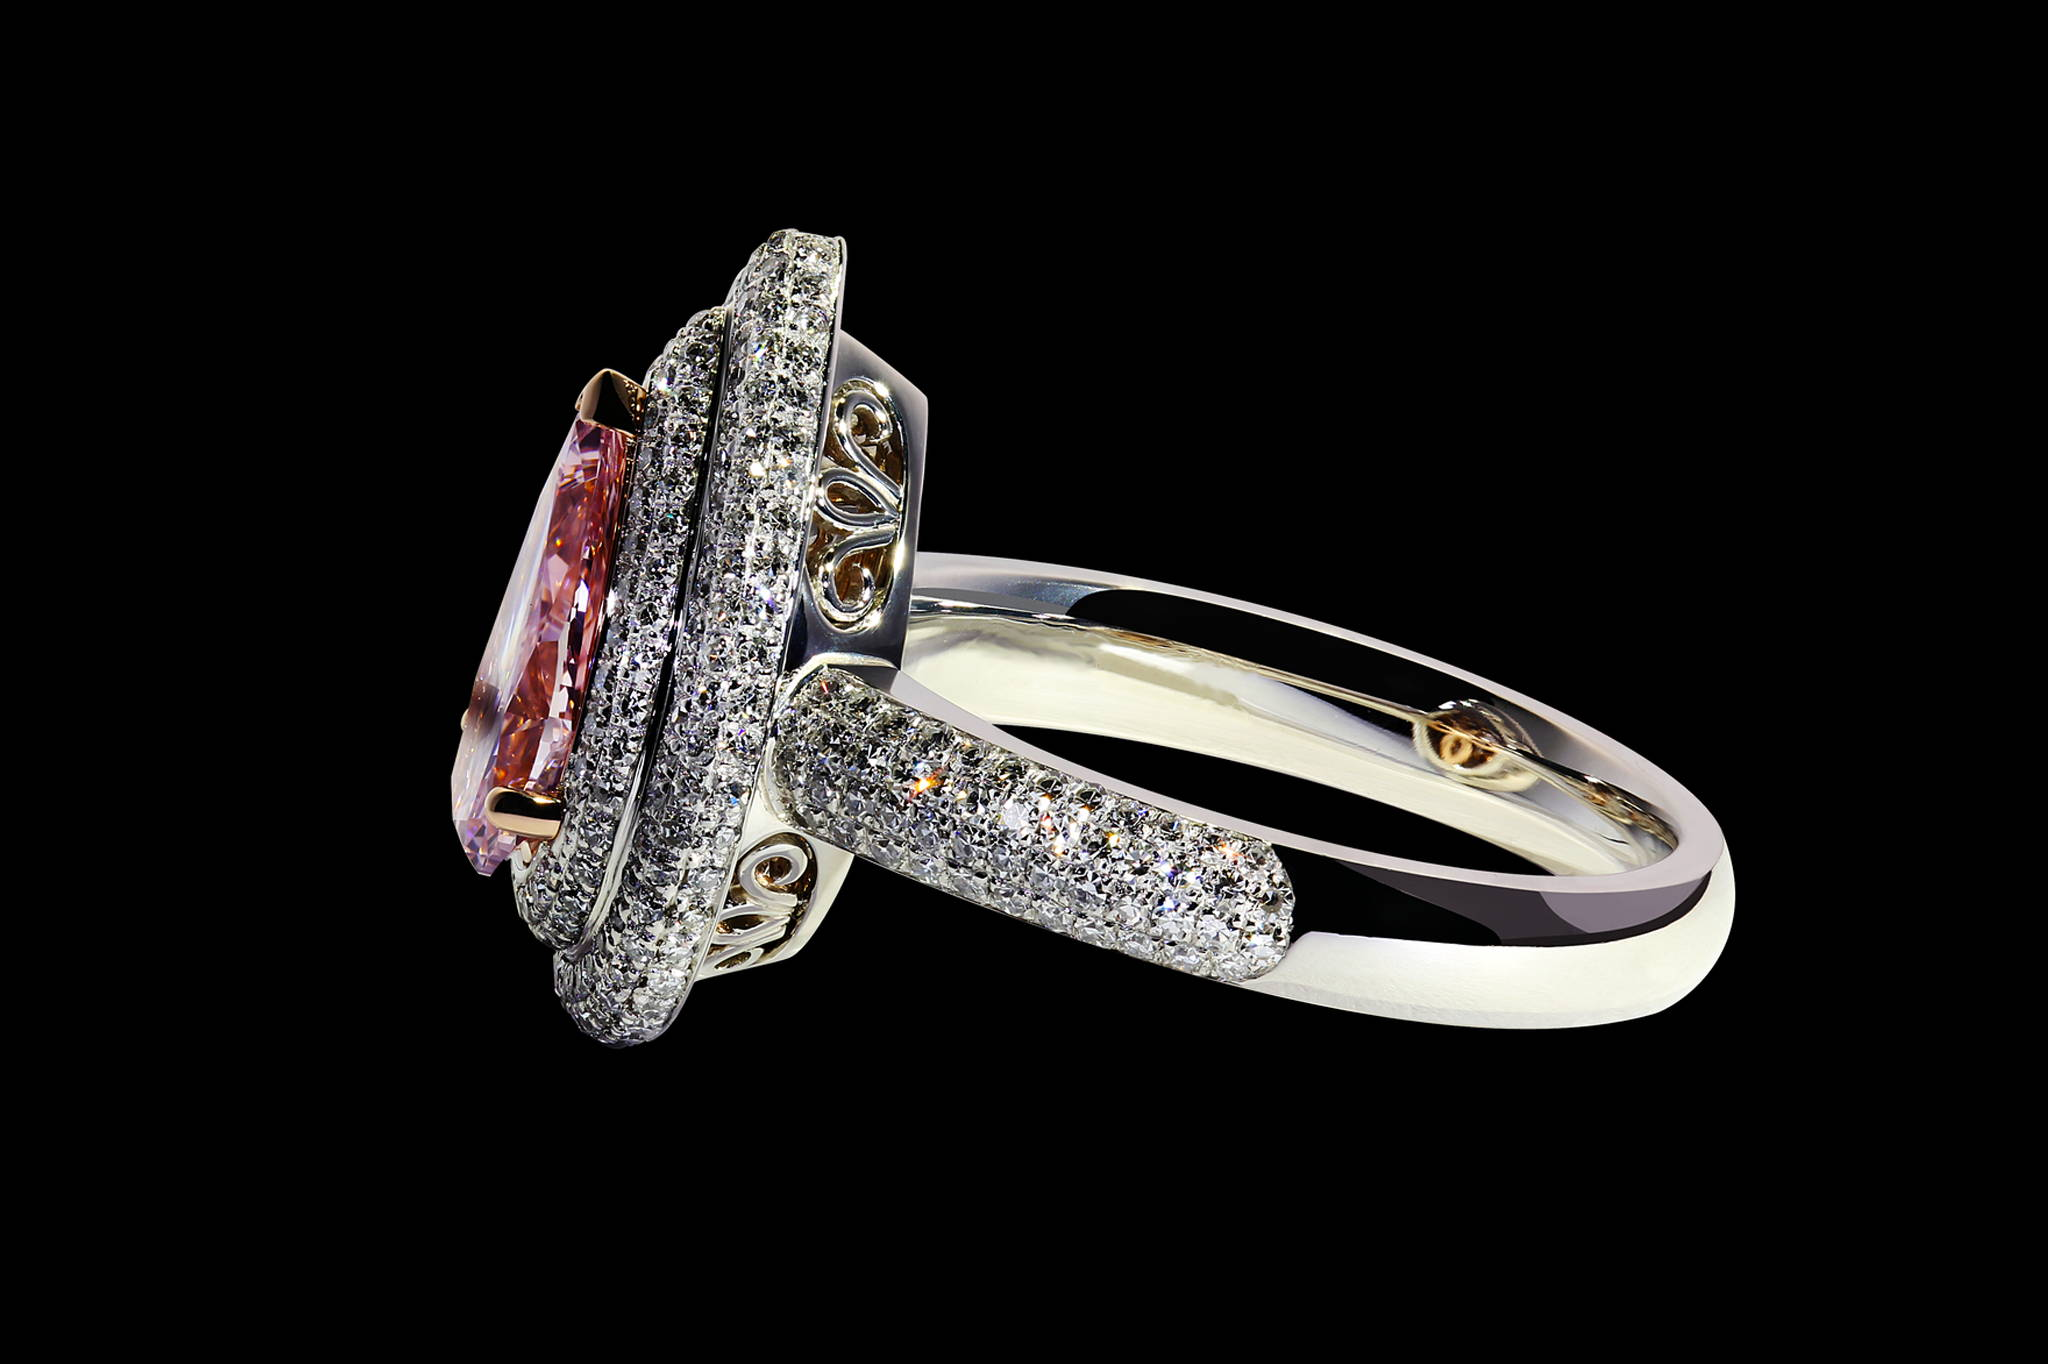 Vintage Style Pink Diamond Ring side view